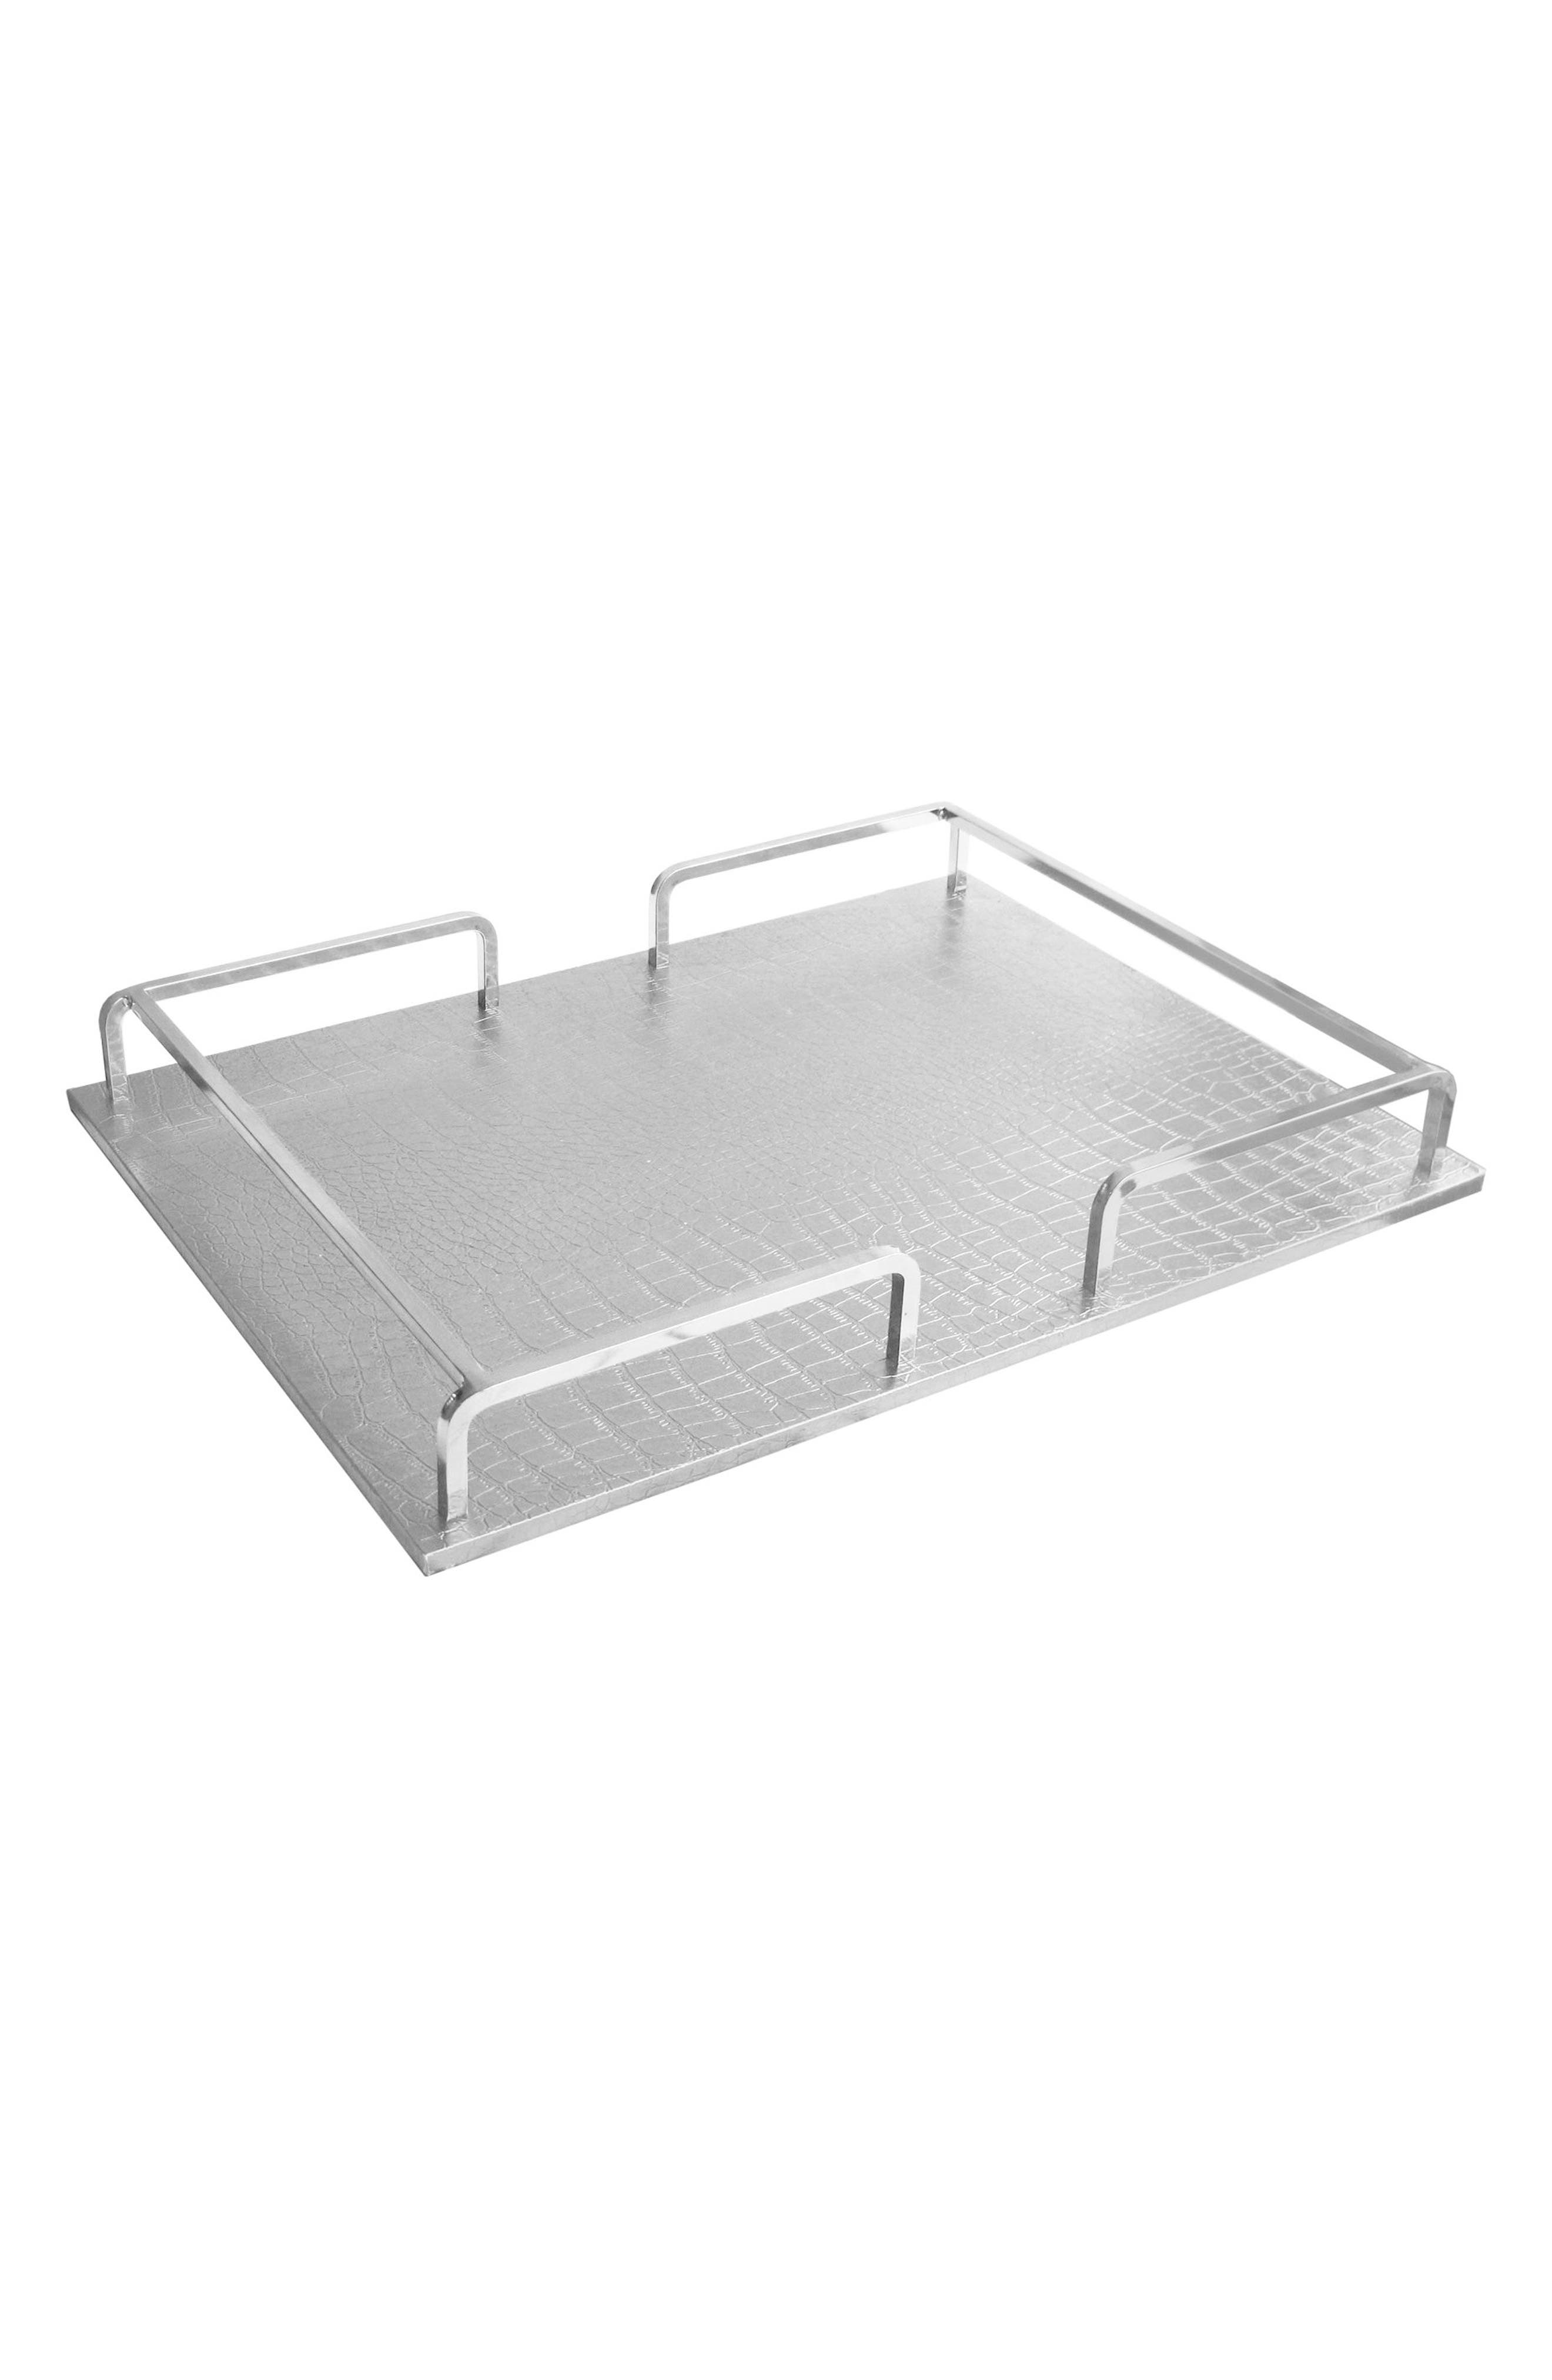 Croc Embossed Serving Tray,                             Main thumbnail 1, color,                             040